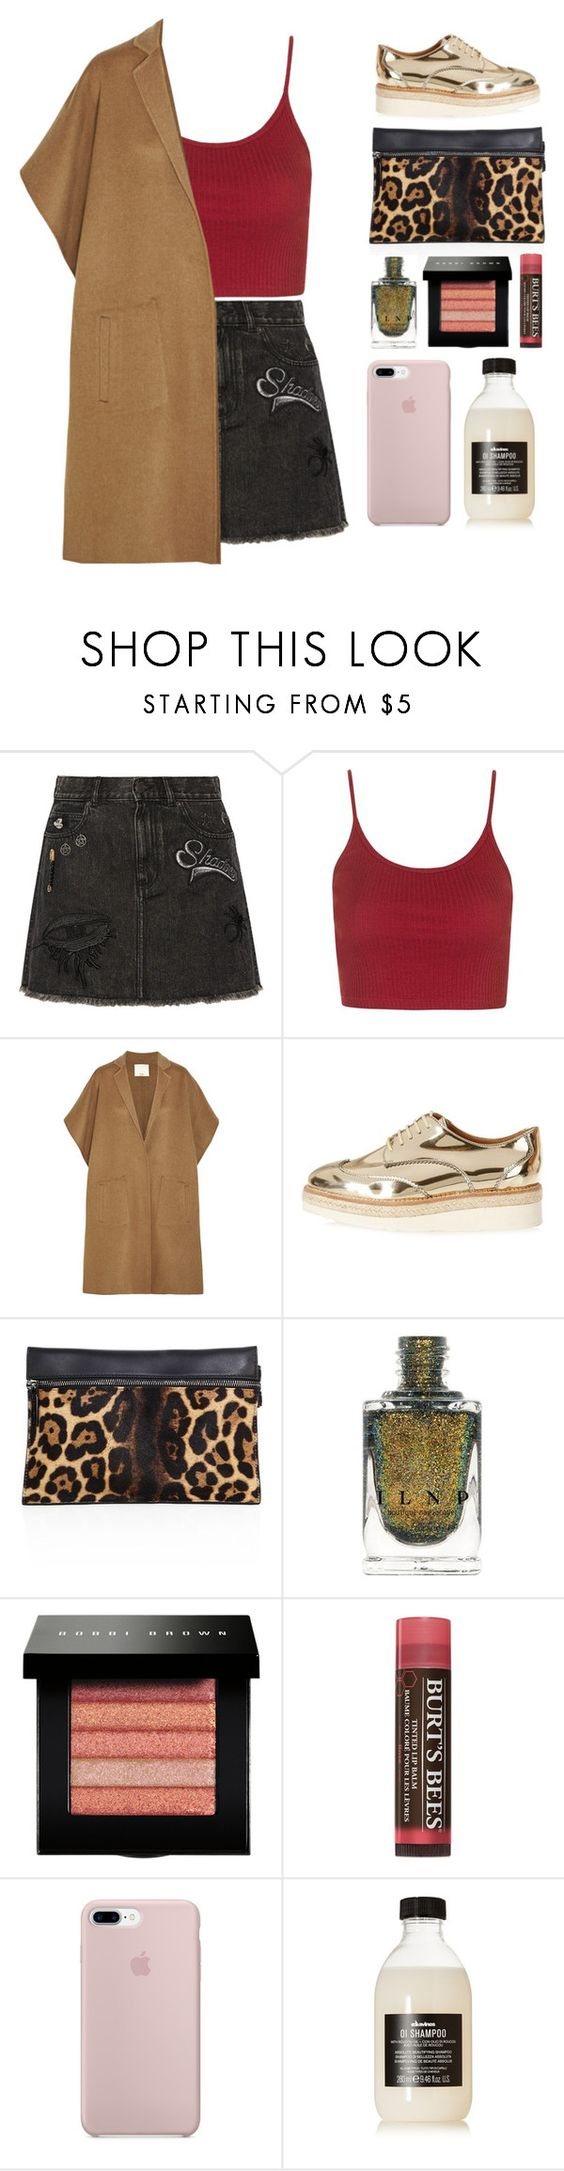 """""""5.009"""" by katrina-yeow ❤ liked on Polyvore featuring Marc Jacobs, Topshop, TIBI, River Island, Victoria Beckham, Bobbi Brown Cosmetics, Burt's Bees and Davines"""